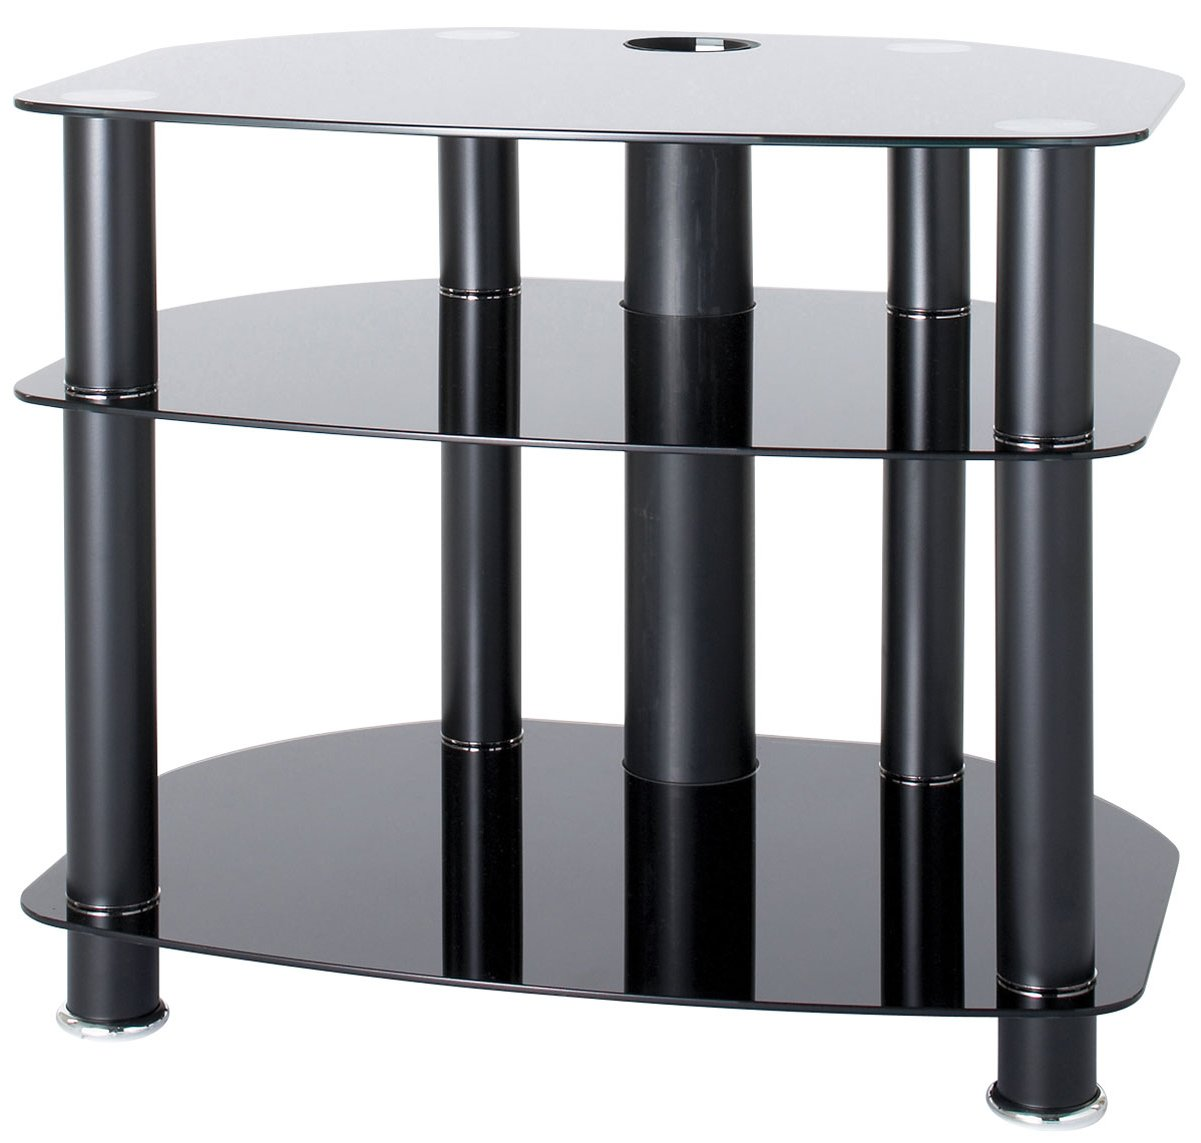 Alphason Black Glass Tv Stand For Up To 26 Tvs